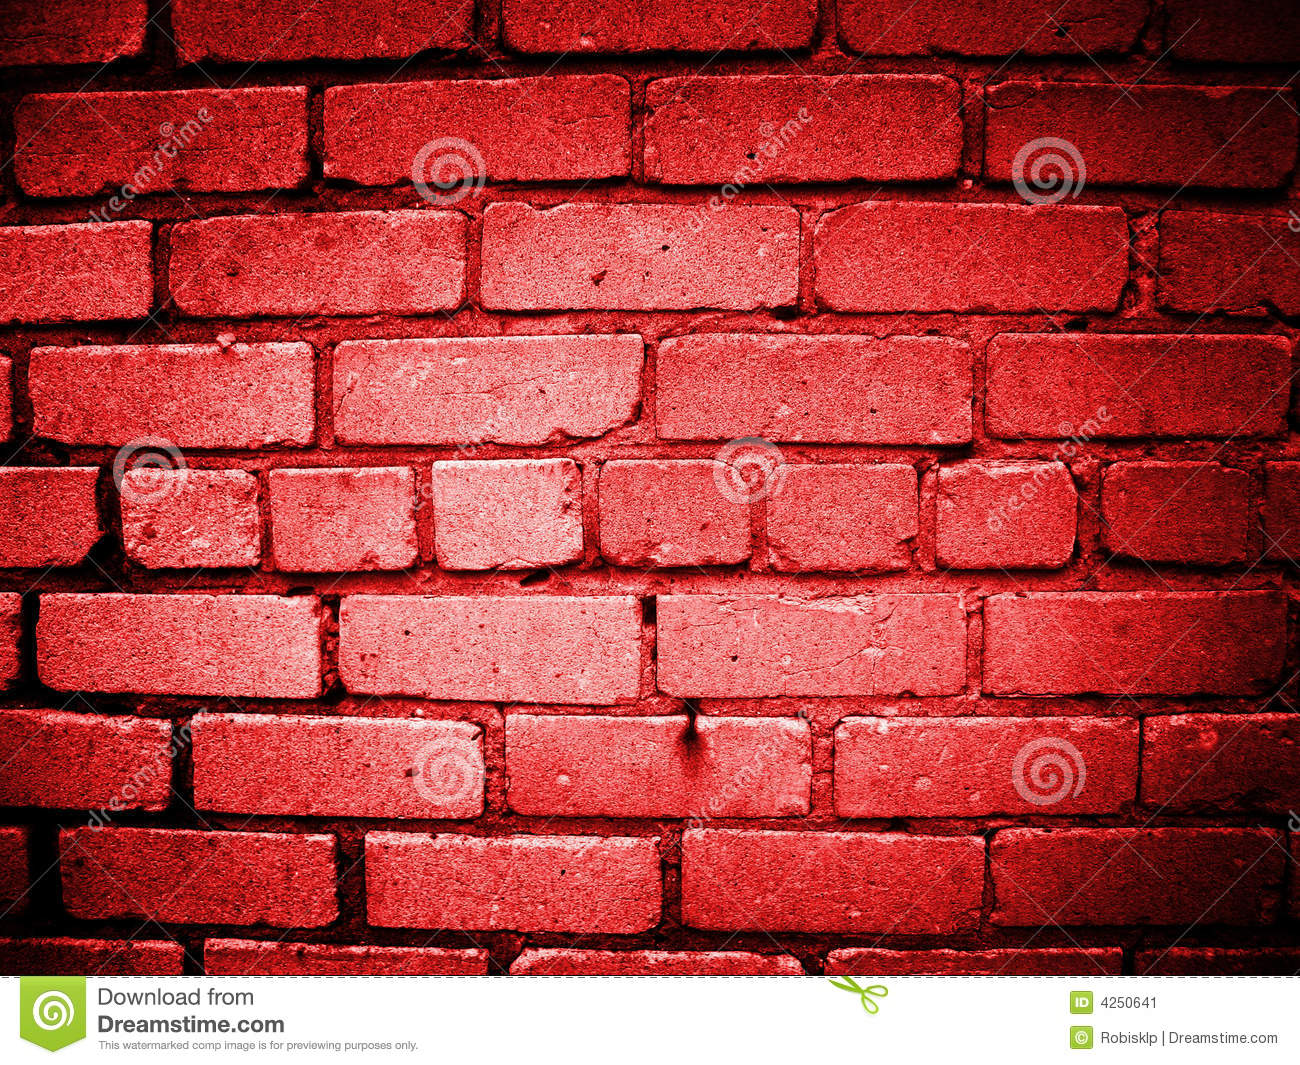 Red Wall : Red Wall Stock Image - Image: 4250641